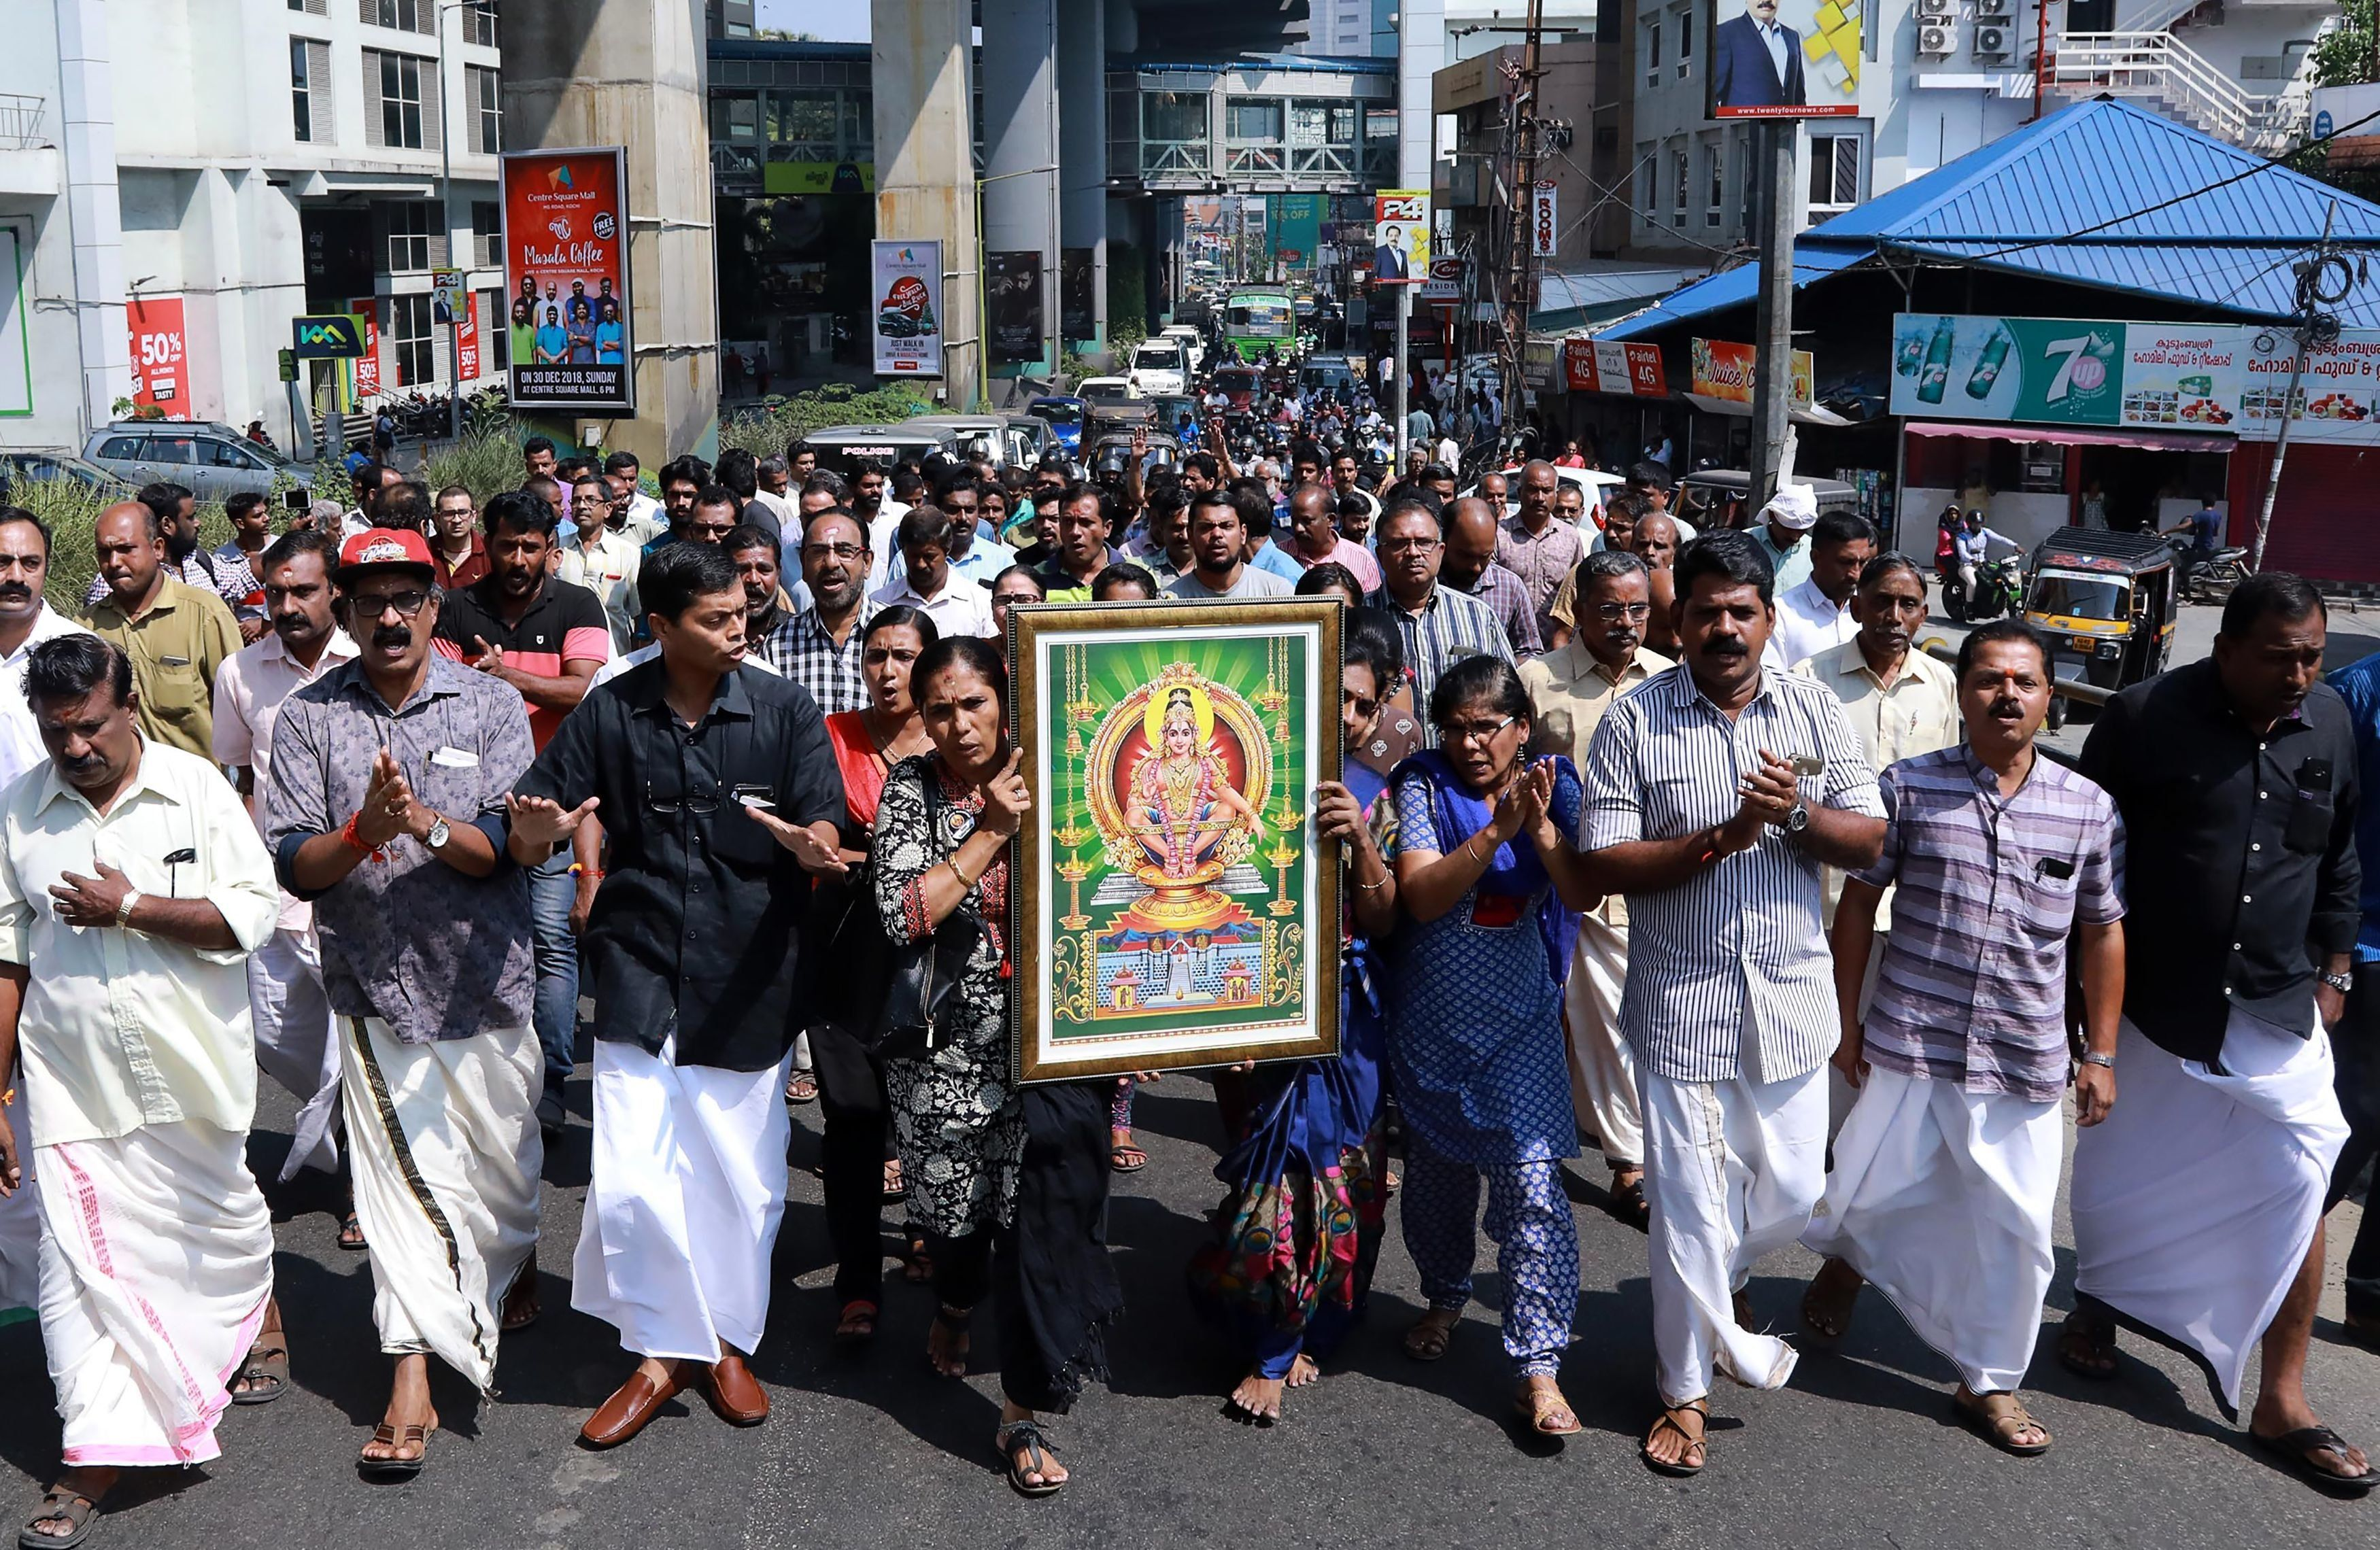 India protesters carry a picture of the Hindu deity Ayyappa at a demonstration following the entry of two women at the Sabarimala temple, in Kochi in southern Kerala state on January 2, 2019. - Two women secretly entered one of Hinduism's holiest shrines on January 2, breaching a blockade around the Sabarimala temple where devotees have been enraged by an Indian Supreme Court decision to overturn a ban on women aged between 10 and 50. (Photo by - / AFP)        (Photo credit should read -/AFP/Getty Images)